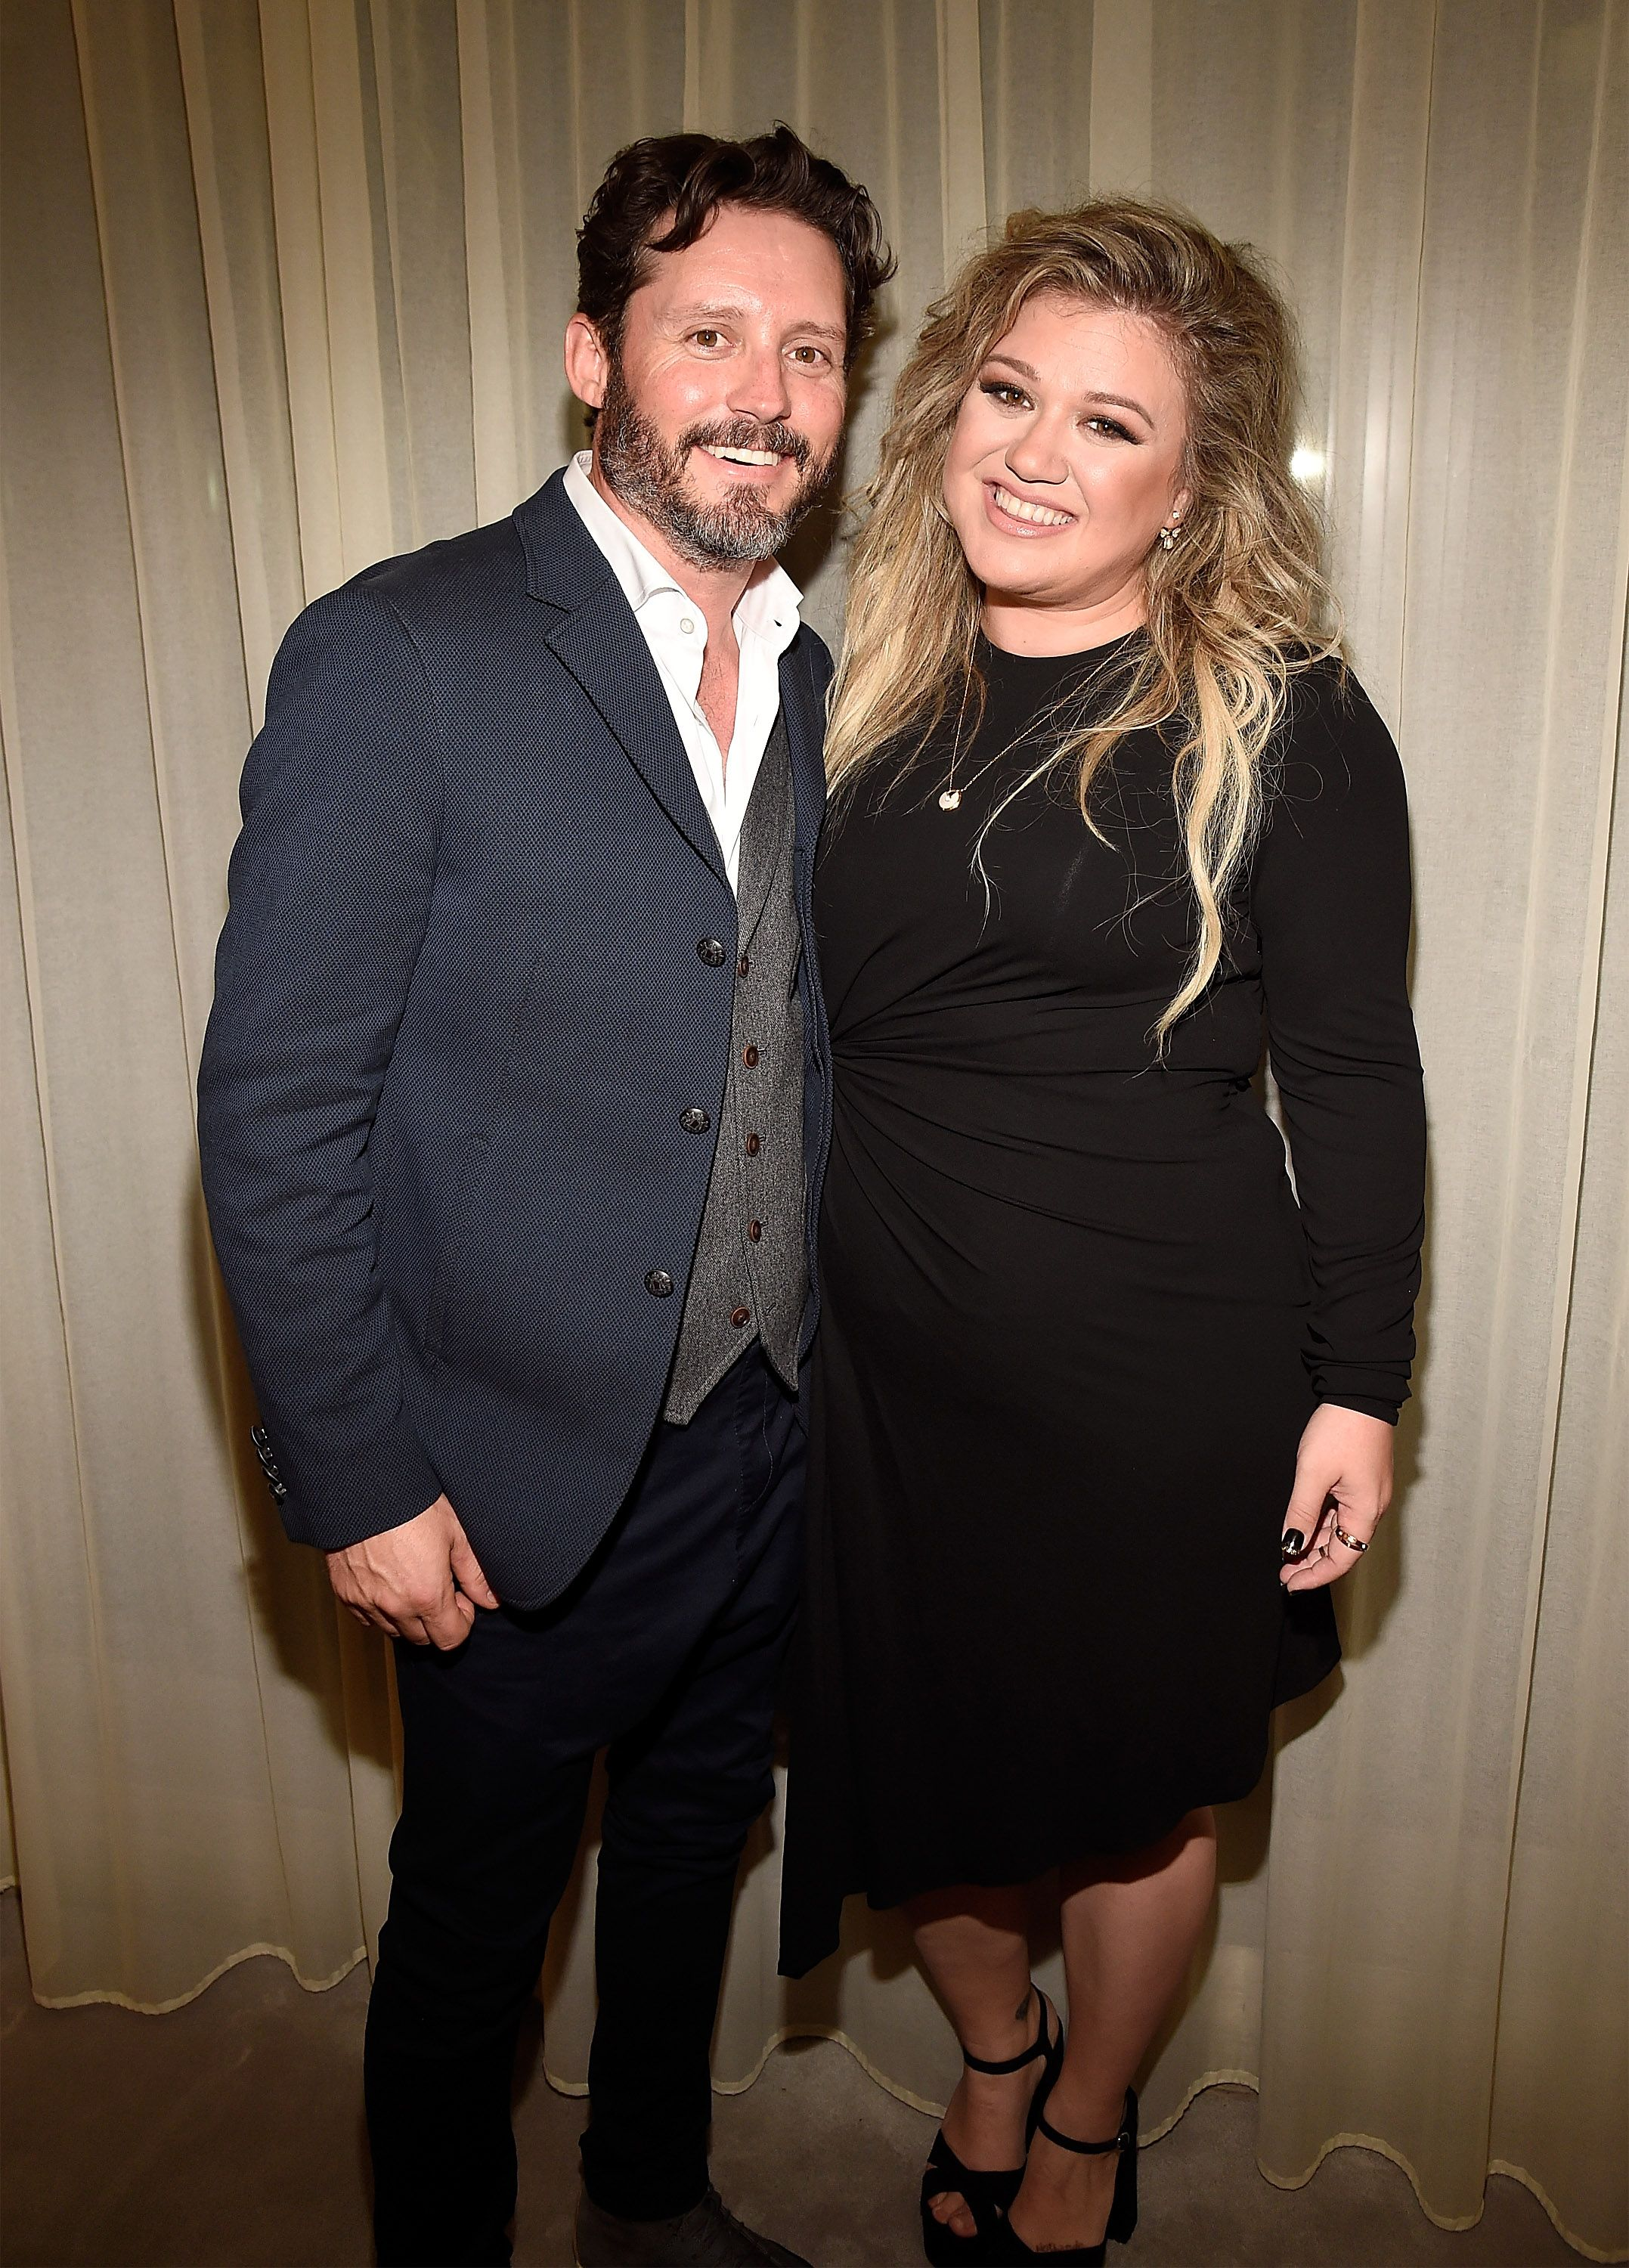 """Brandon Blackstock and Kelly Clarkson backstage after she performed songs from her new album """"The Meaning of Life"""" at The Rainbow Room on September 6, 2017.   Photo: Getty Images"""